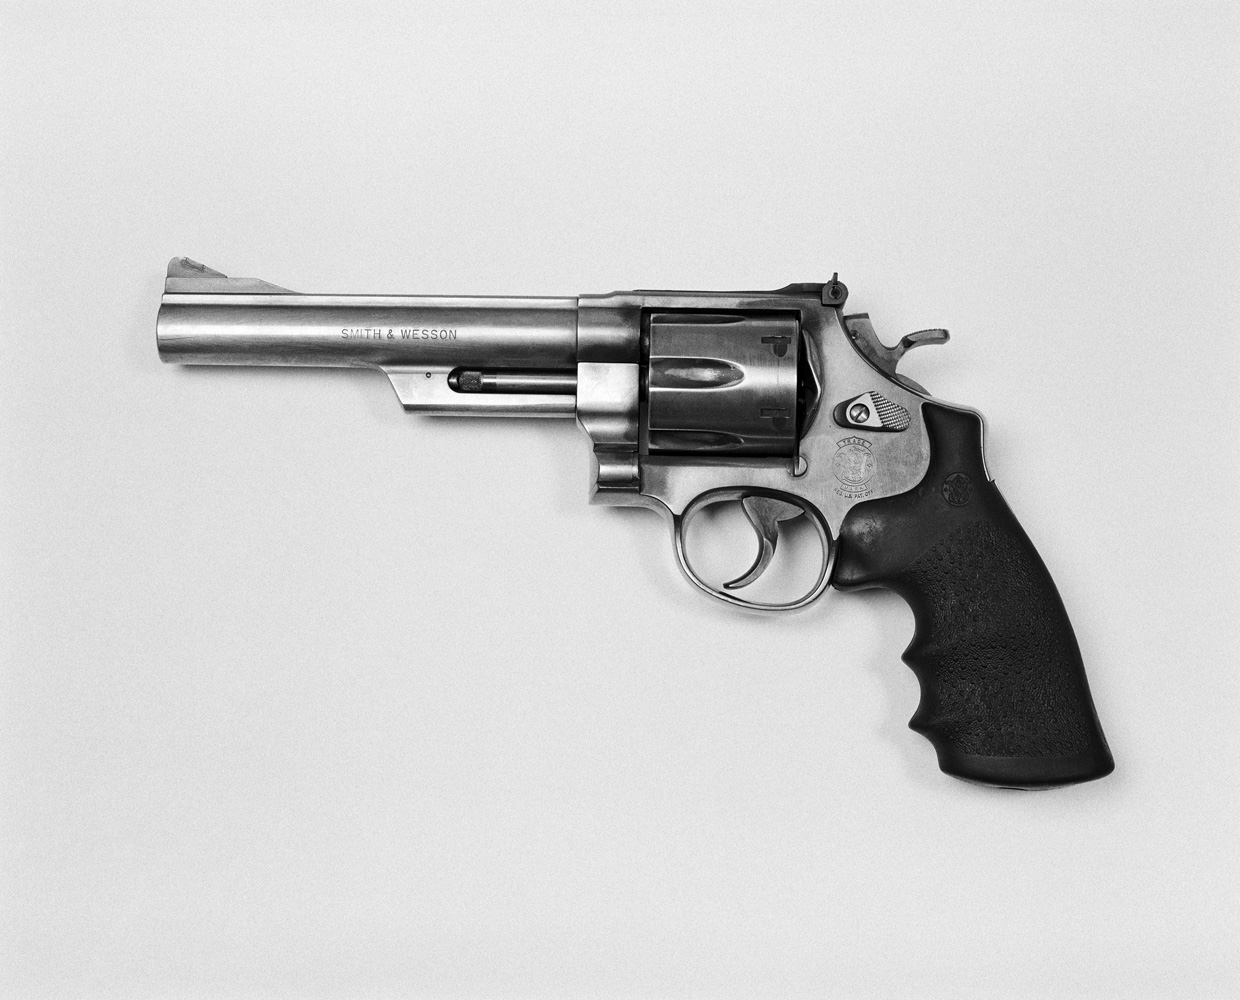 A Smith & Wesson .44 magnum handgun, popularized by the film 'Dirty Harry' starring Clint Eastwood.